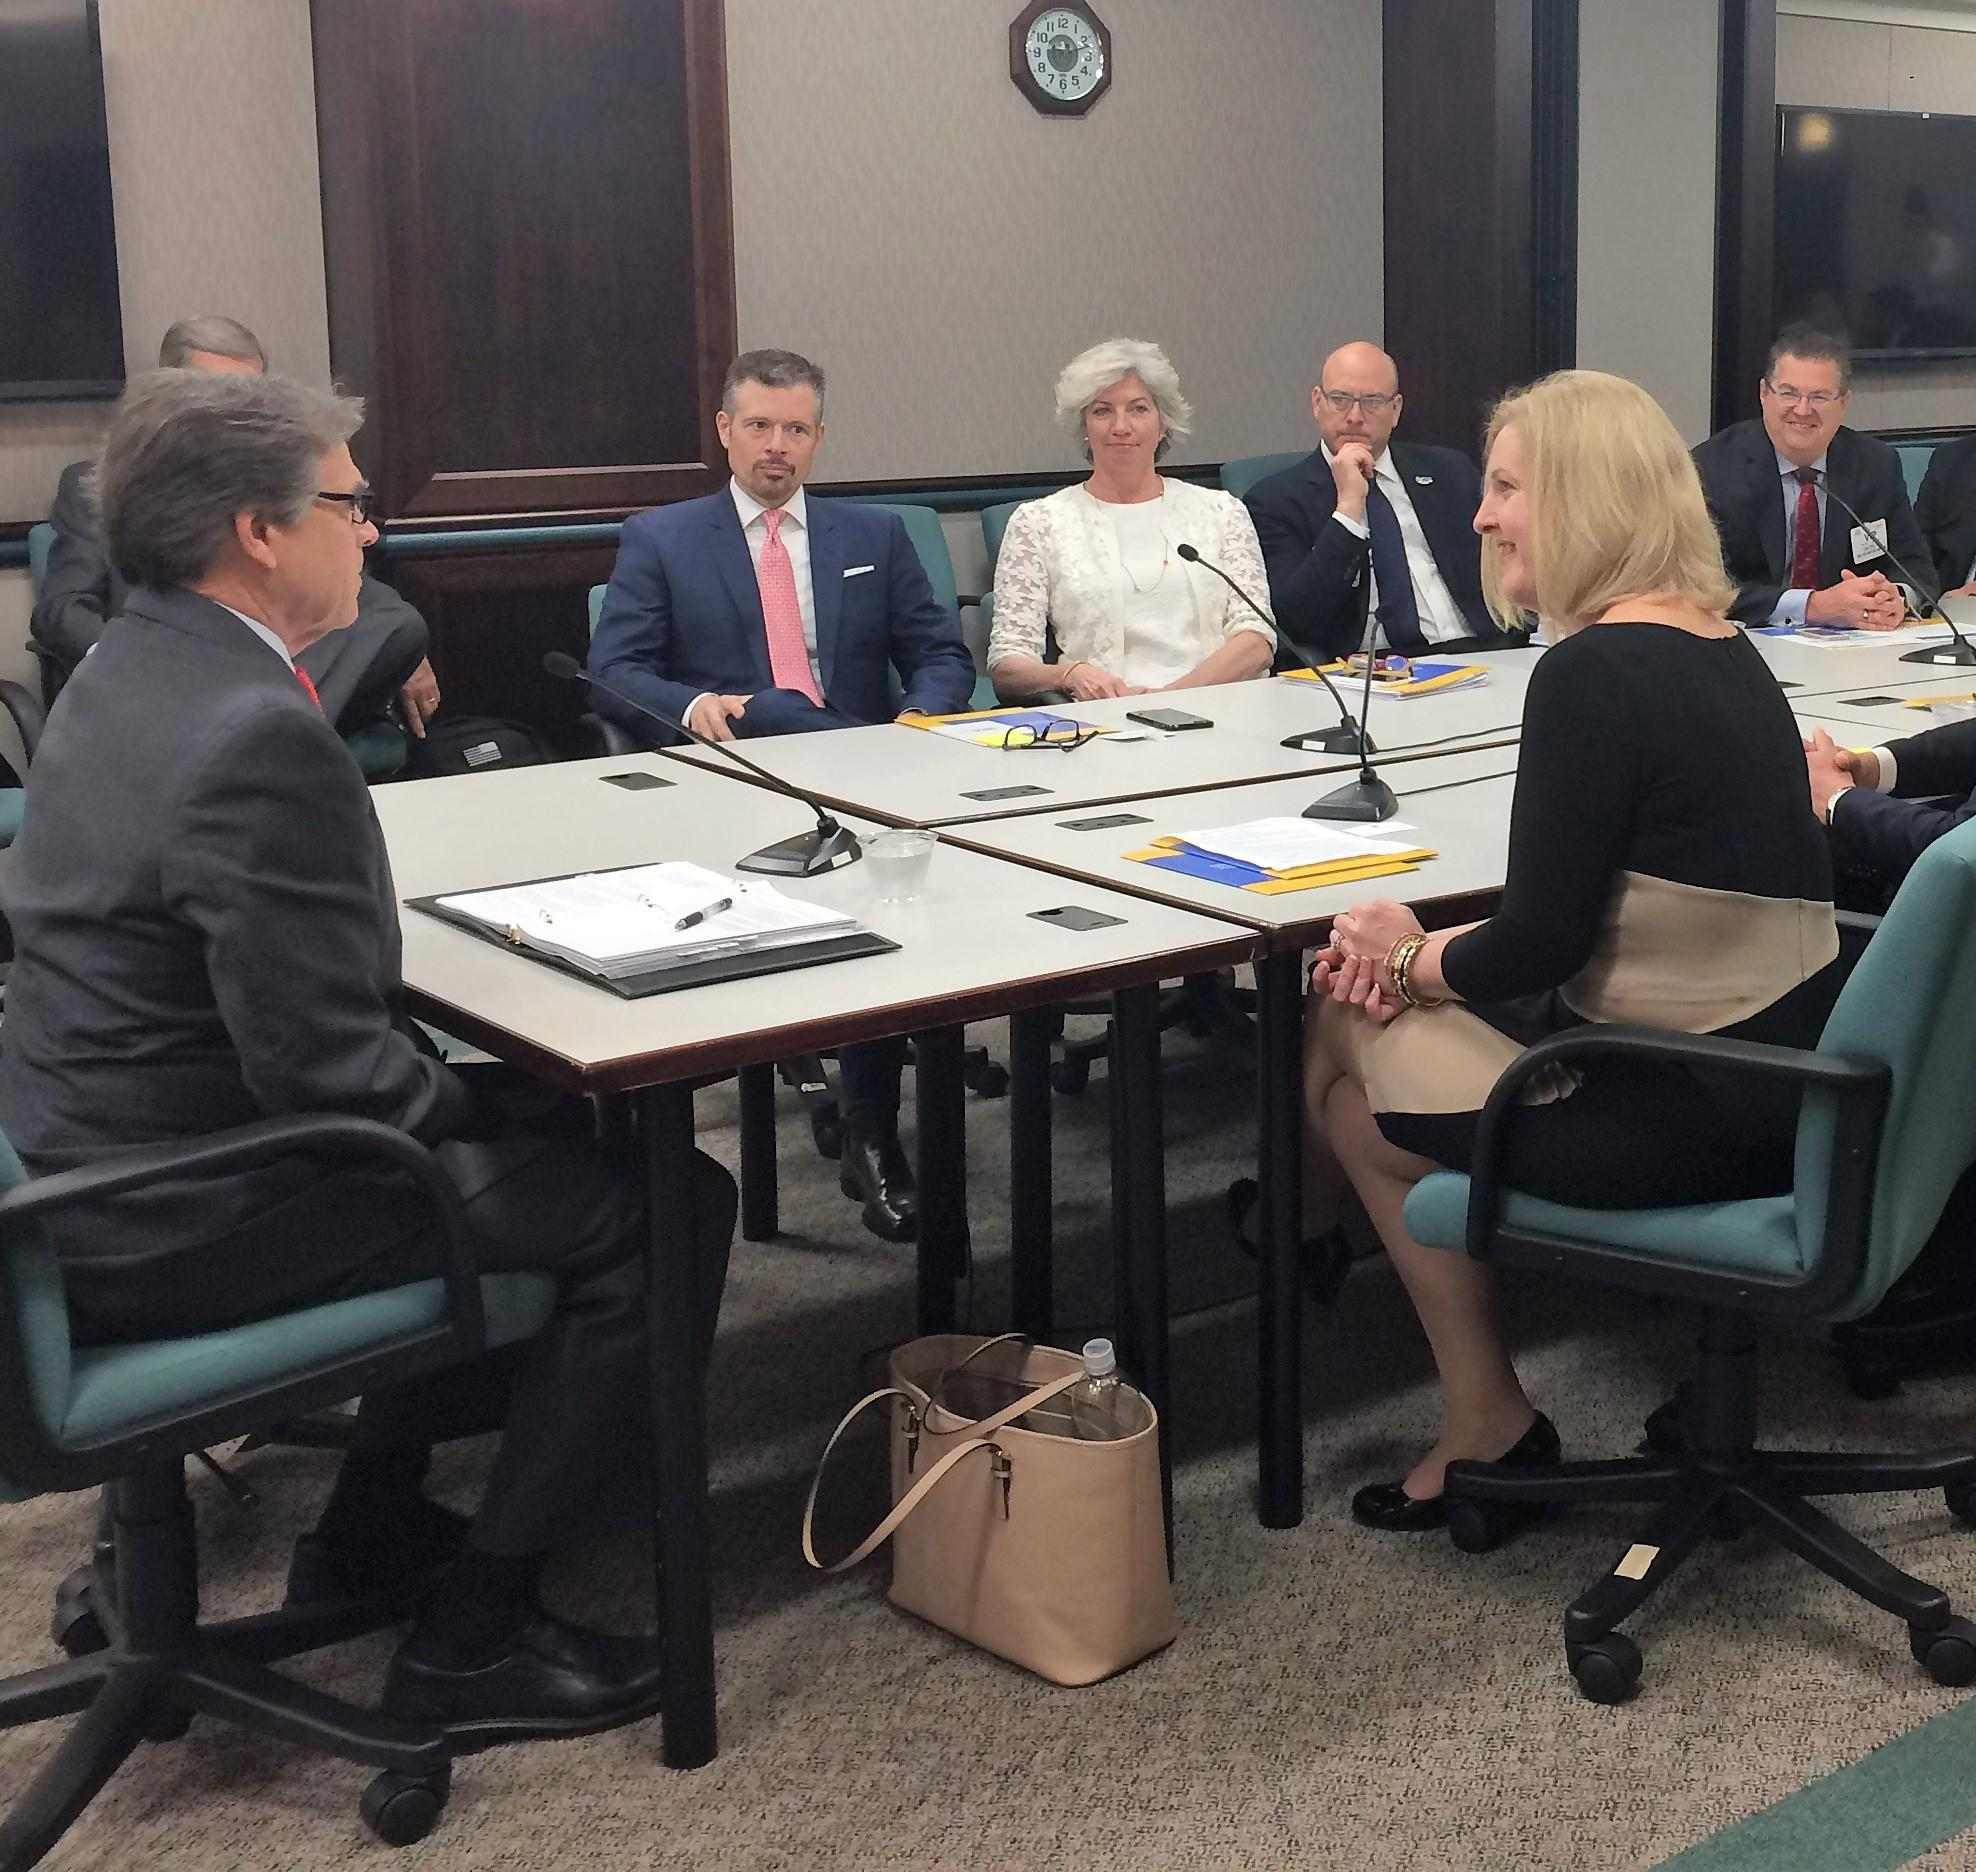 Department of Energy Secretary Rick Perry pictured with SEIA president and CEO Abby Ross Hopper and other SEIA board members at DOE headquarters in the Secretary's first public engagement. Source: SunLink LinkedIn